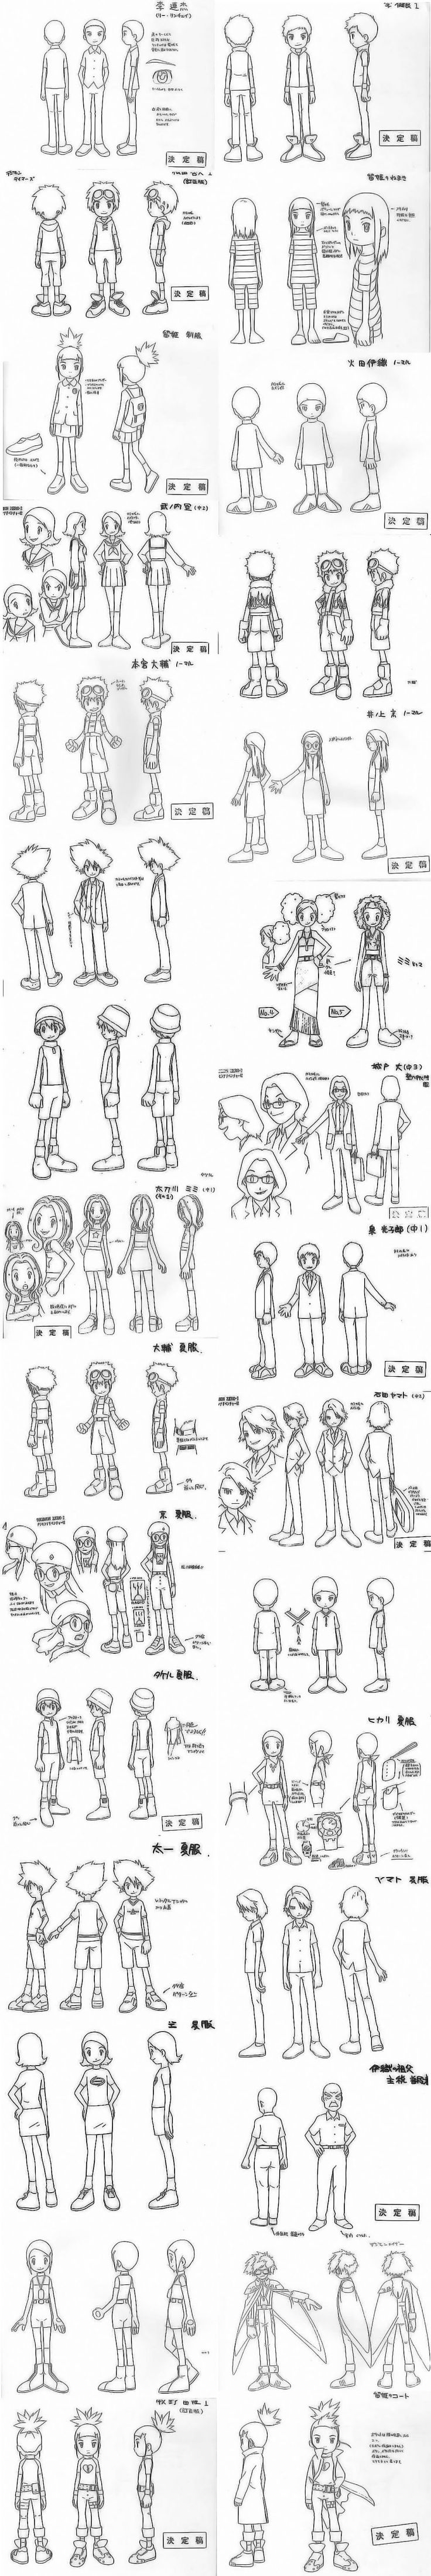 digimon characters model sheet